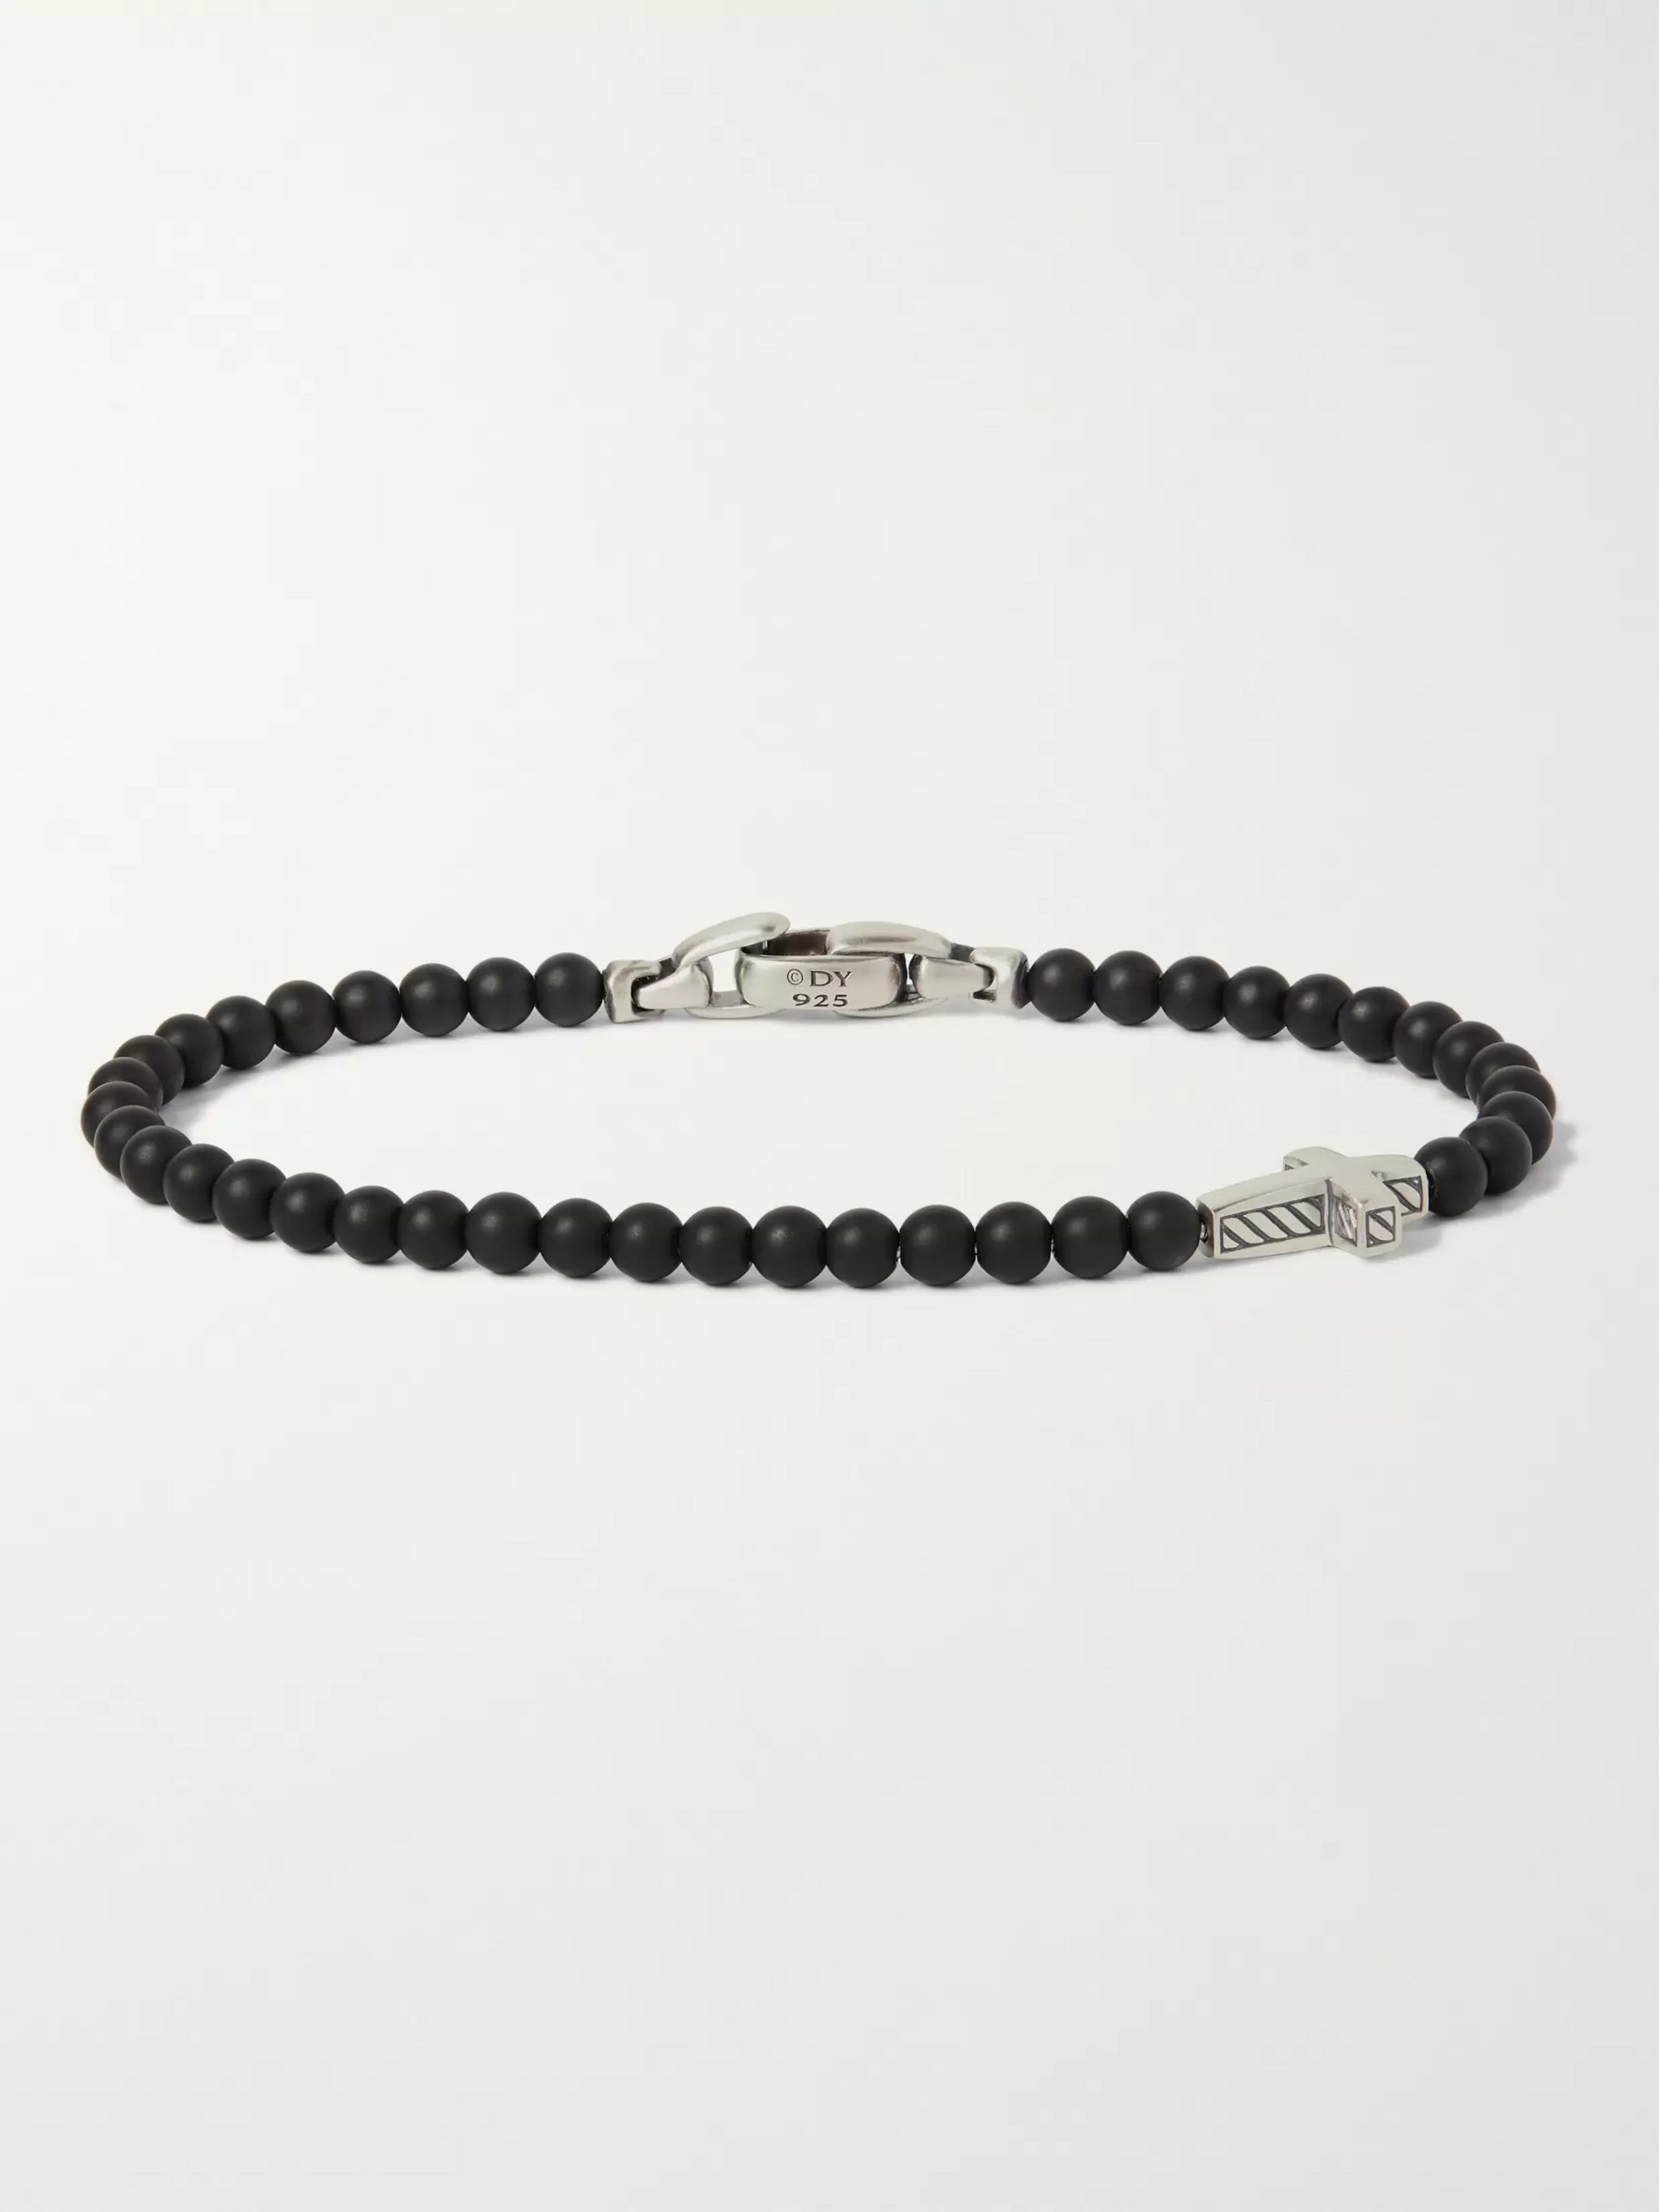 David Yurman Onyx Sterling Silver Beaded Bracelet